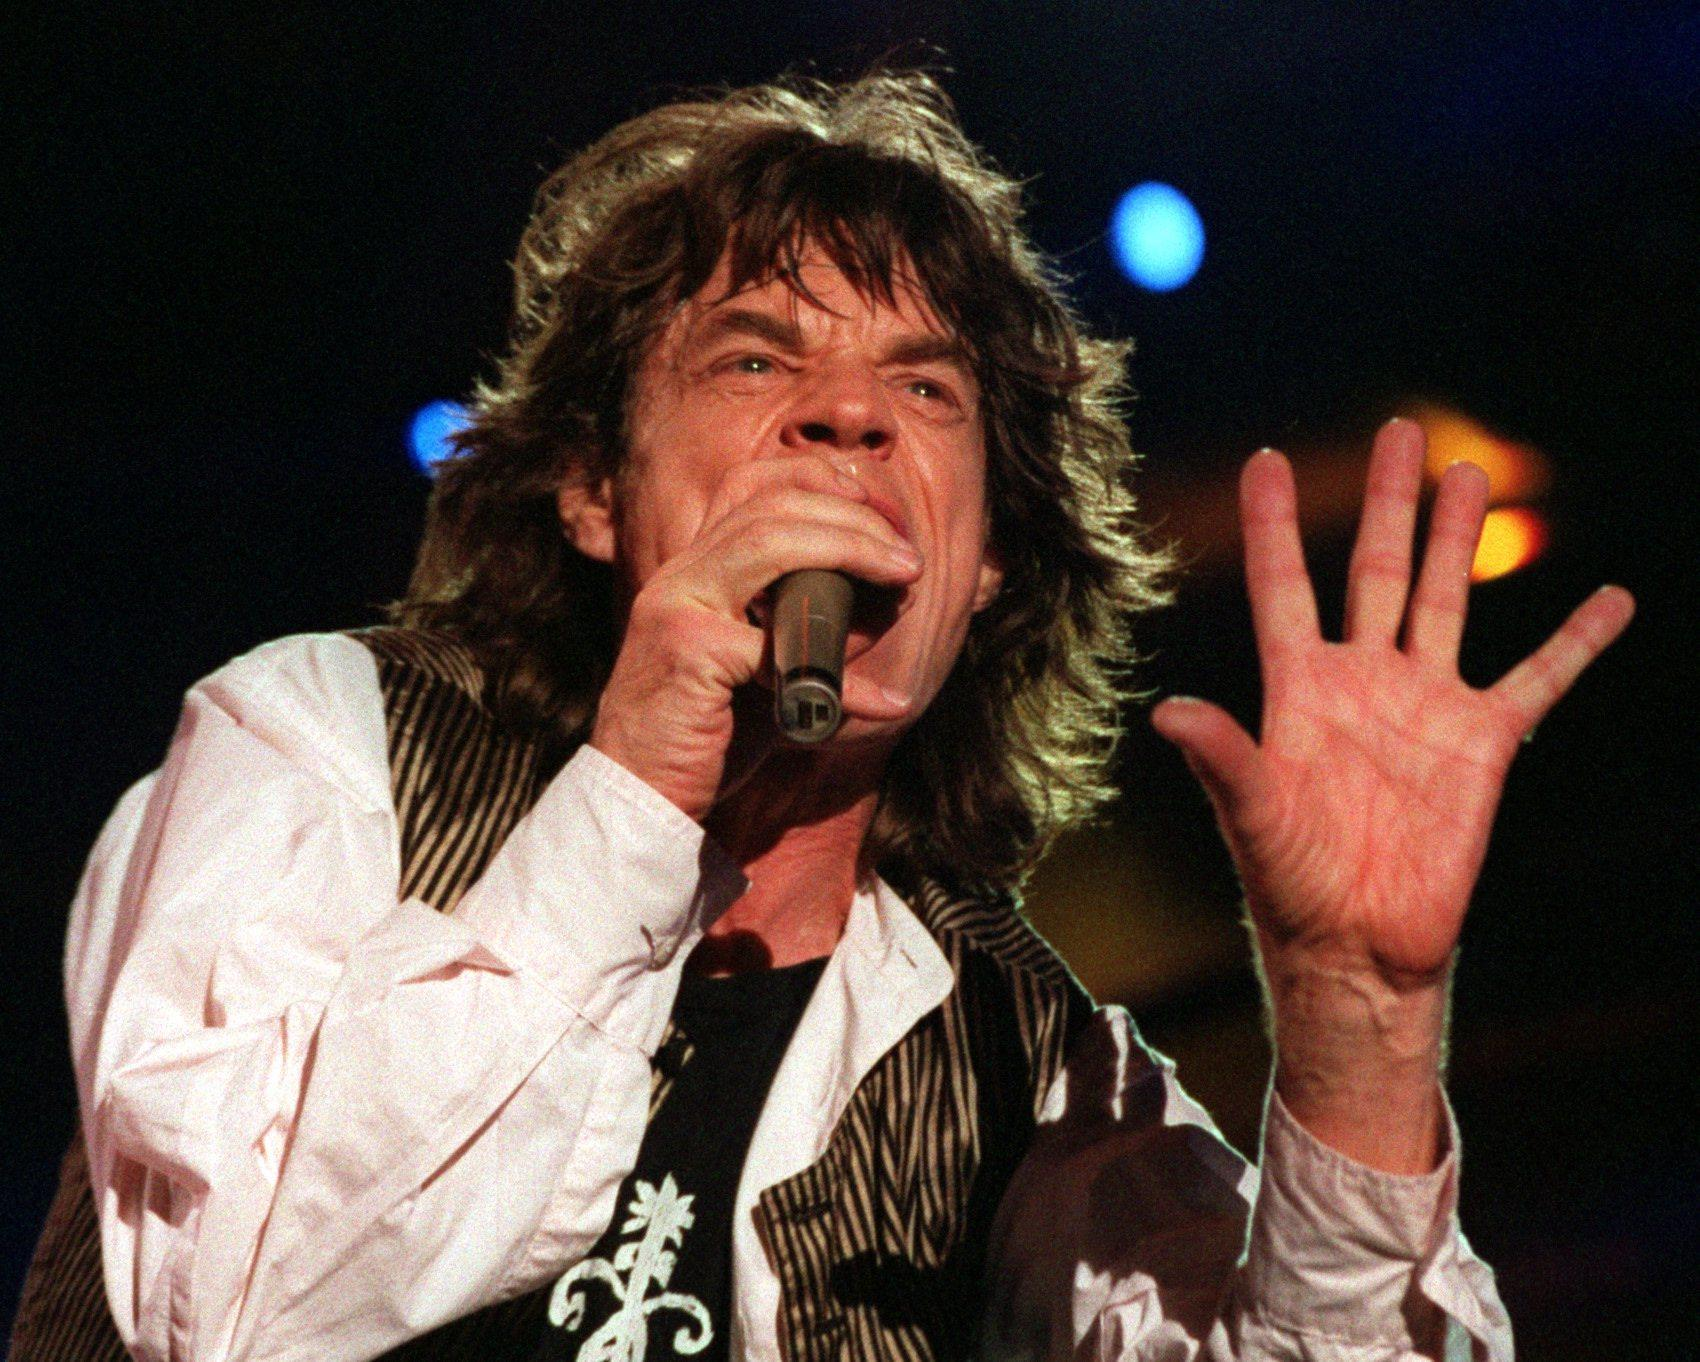 Mick Jagger Drops New Tracks, Including Skepta Collaboration